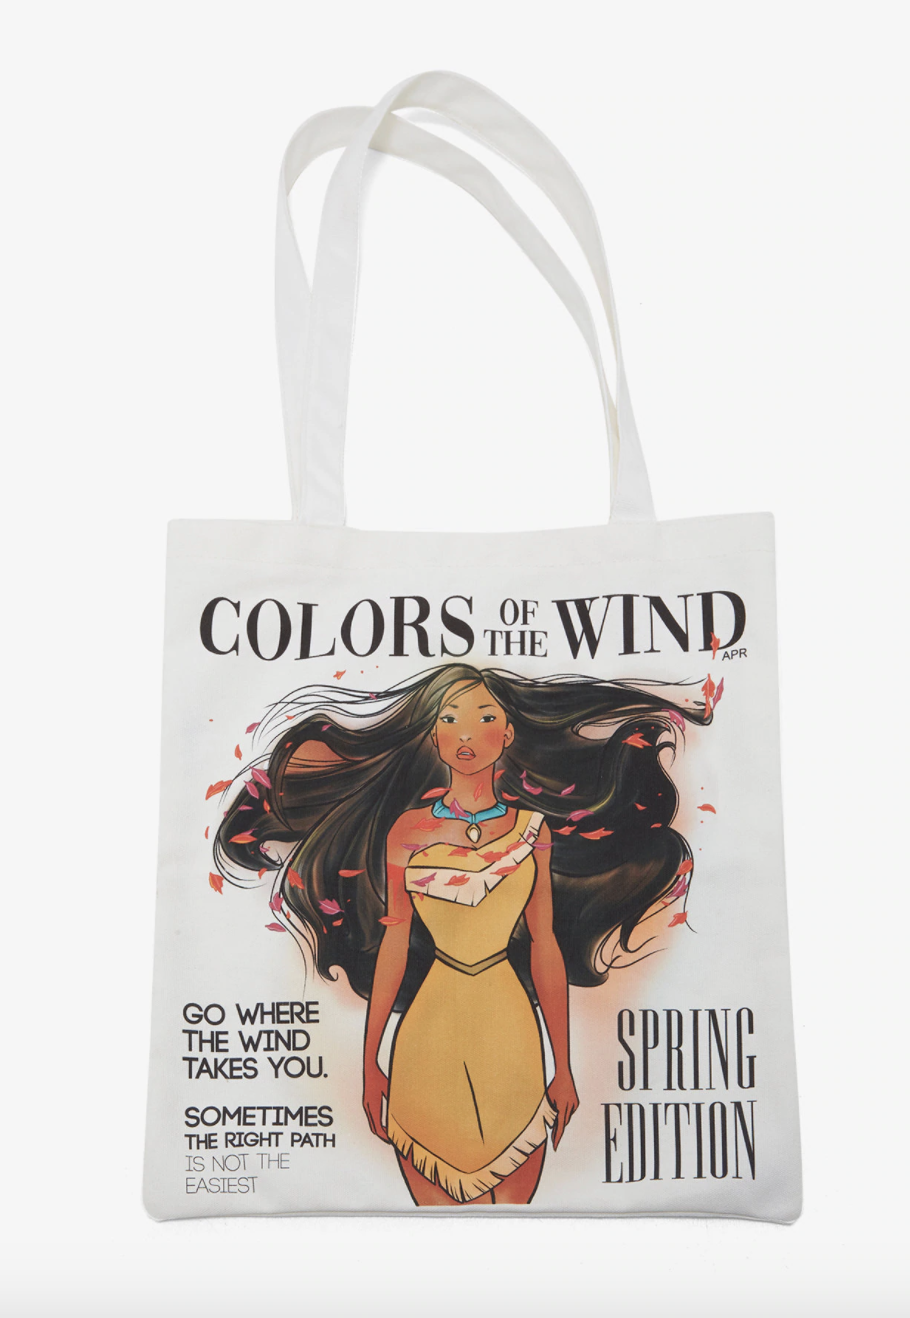 a white tote bag with an illustration of pocahontas on it with leaves blowing through her hair and various magazine captions